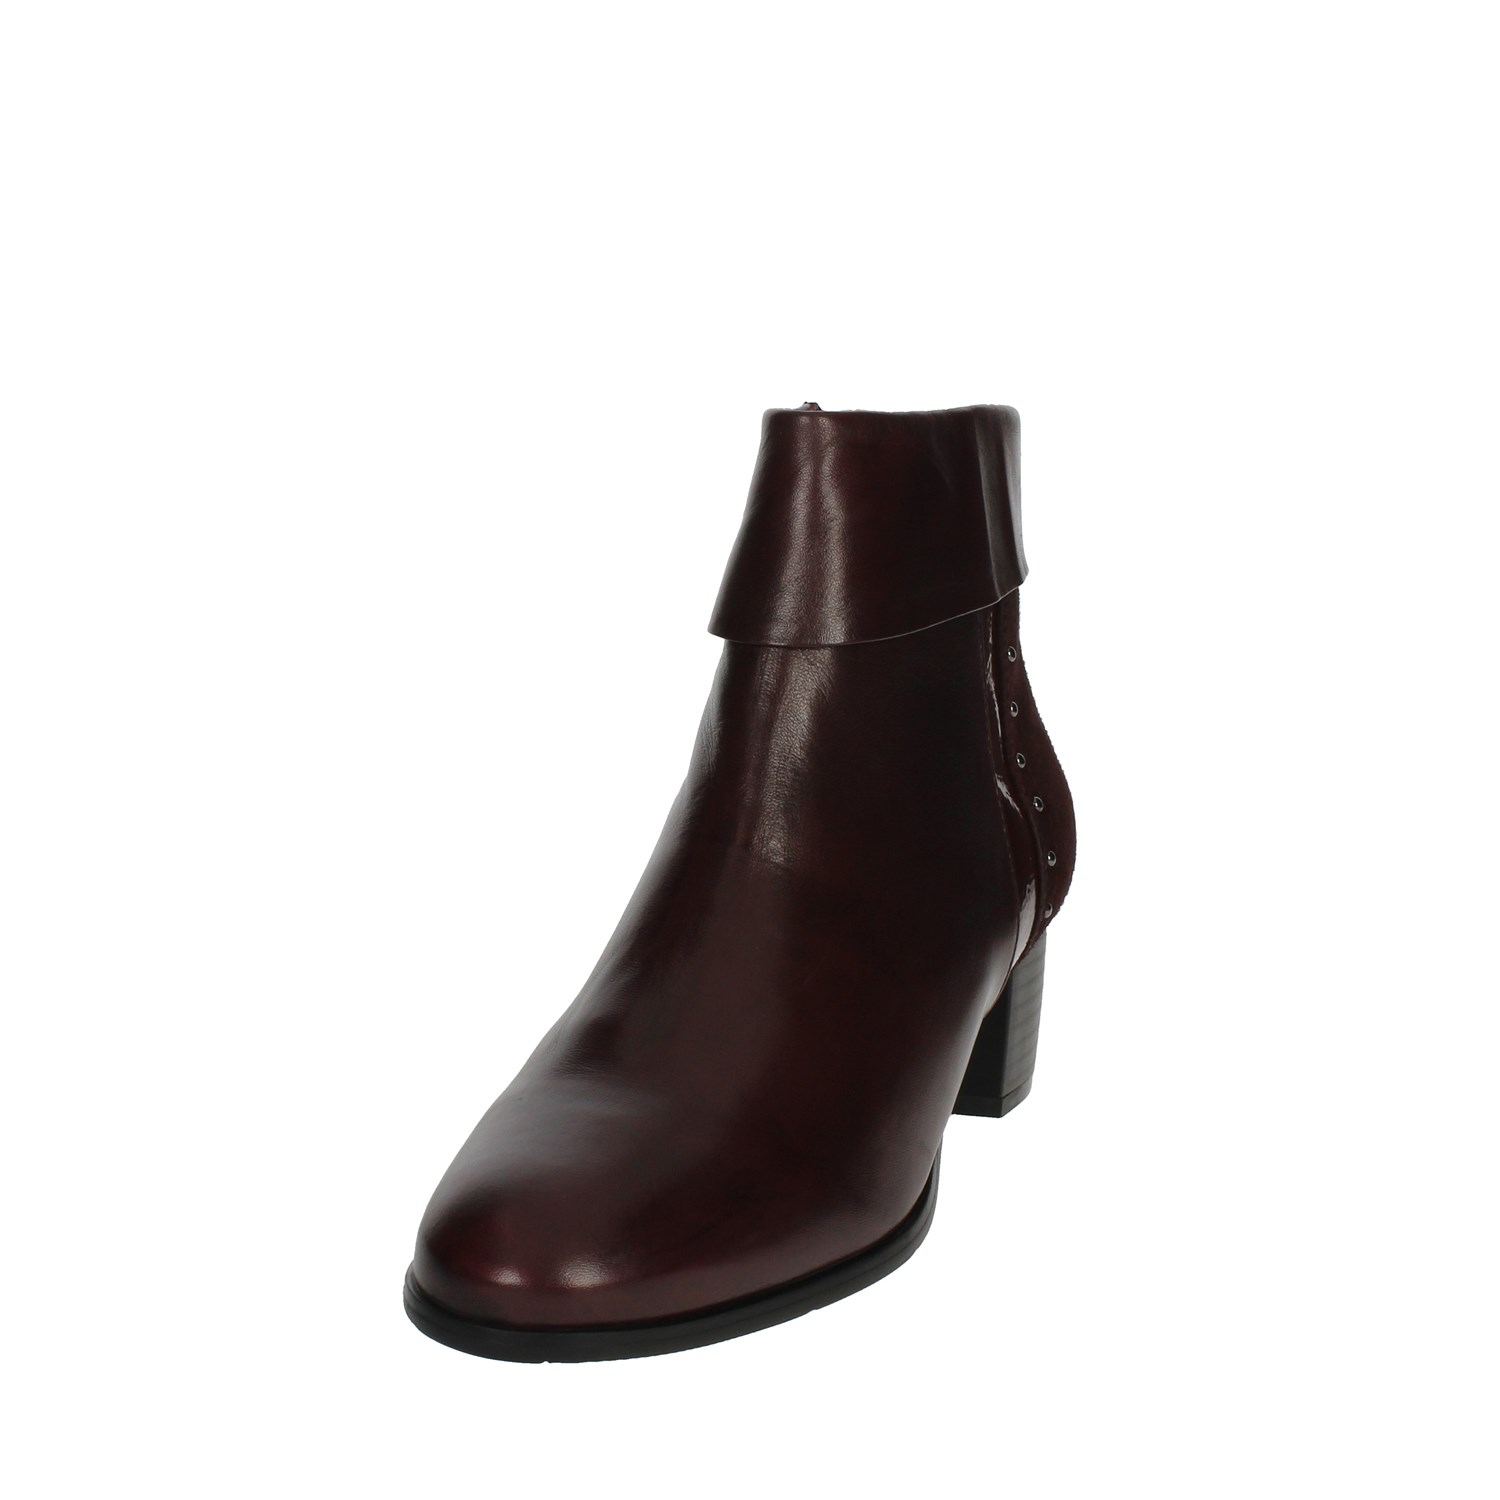 Cinzia Soft ICB105 002 Burgundy Ankle Boots With Heels Heels Heels Women Fall Winter 23acbe